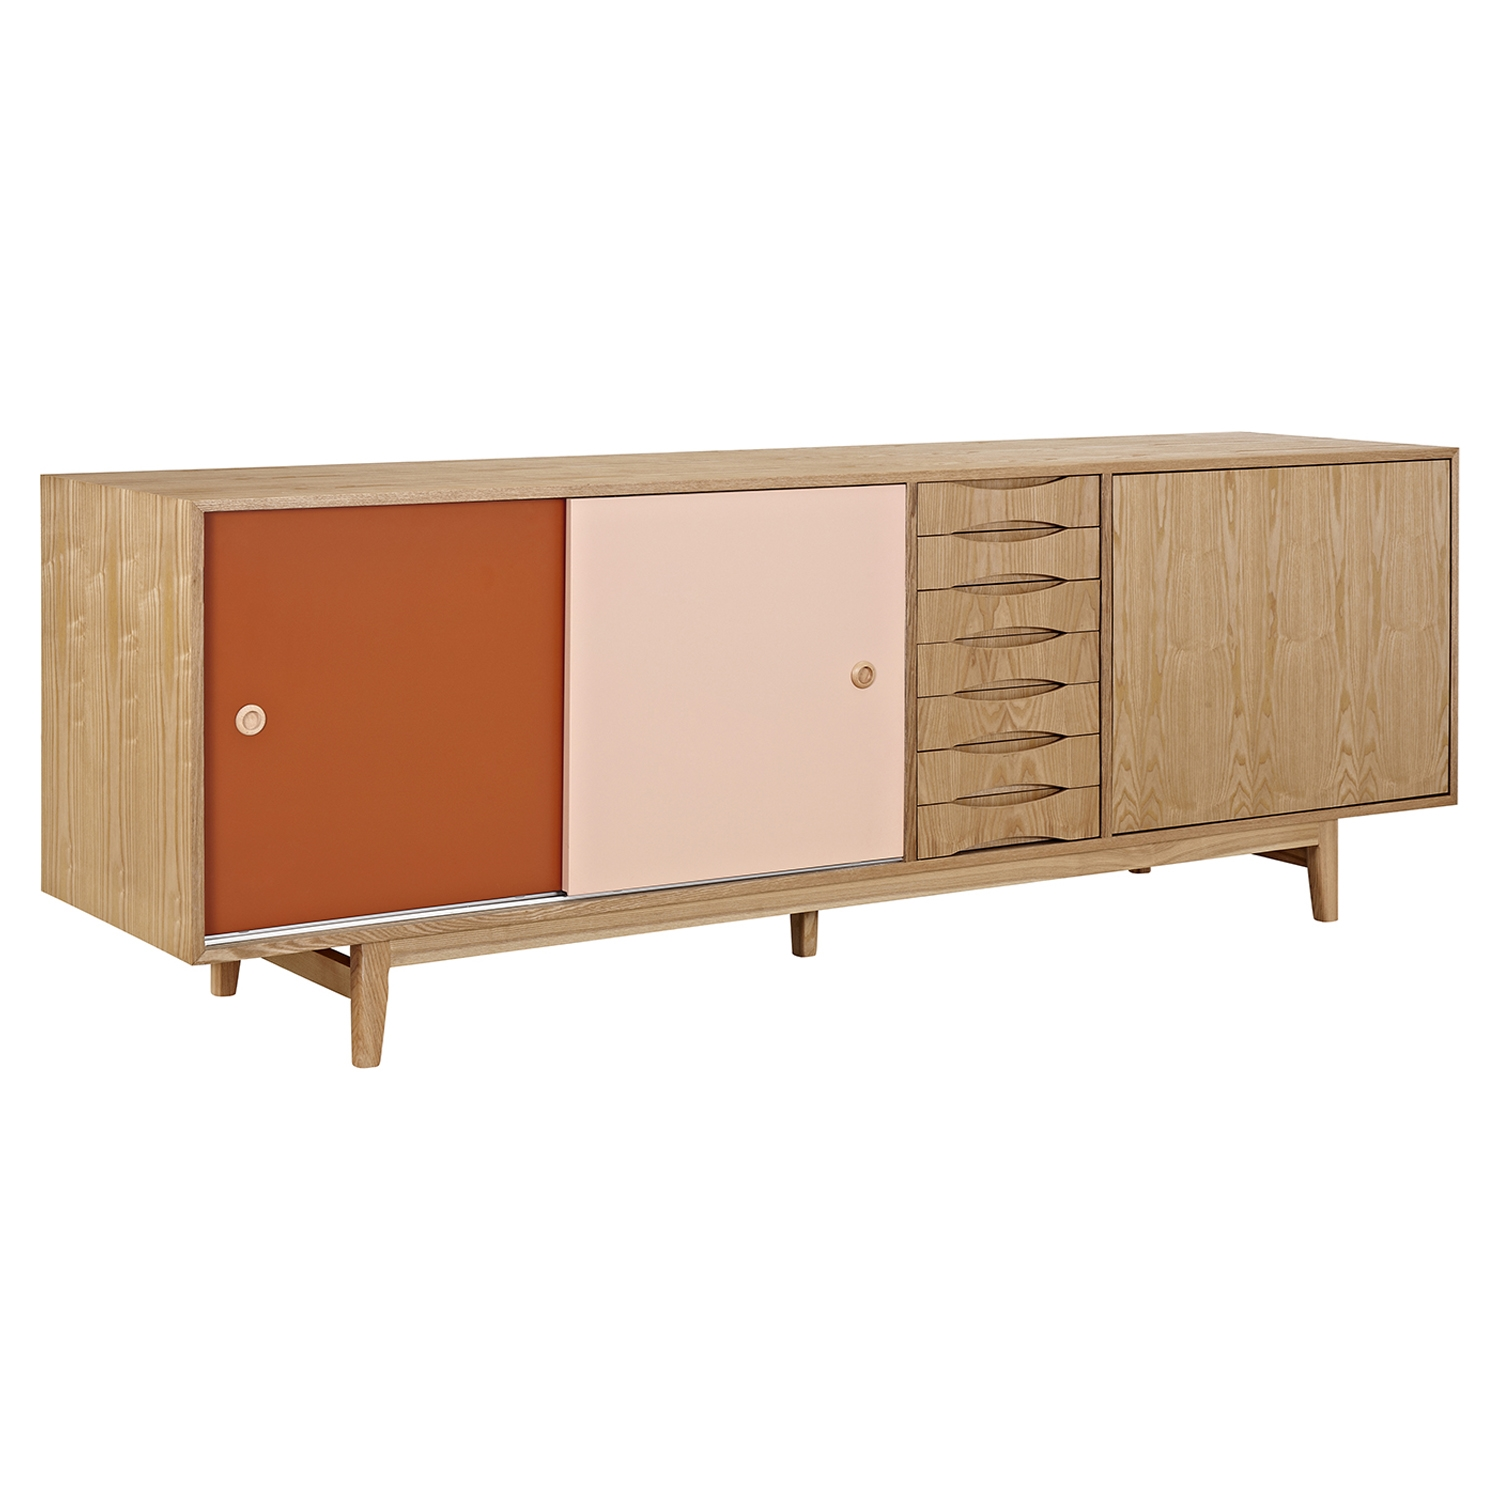 Alma 7 Drawers Sideboard - Natural with Red Door - NYEK-224405-NR